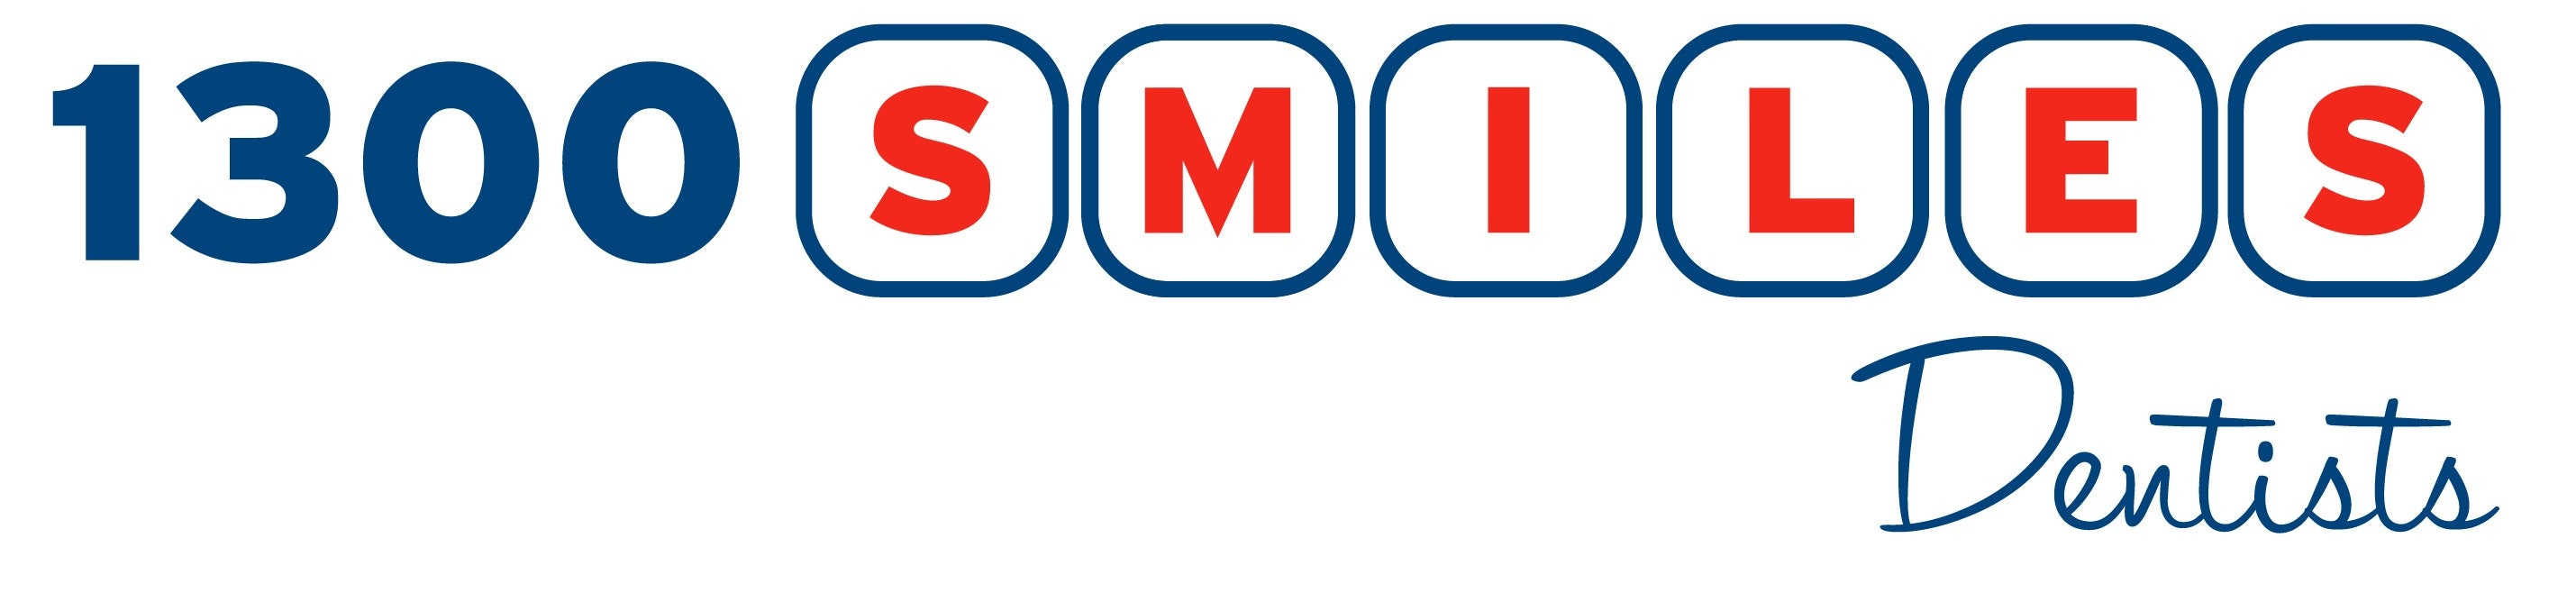 logo for 1300 Smiles - Roma Dentists